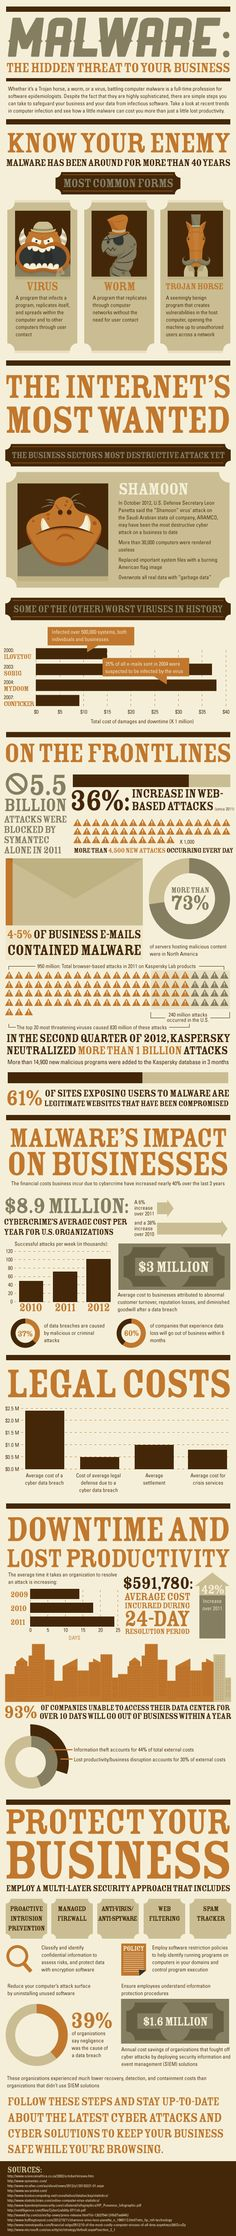 Malware: the hidden threat to your business #infographic